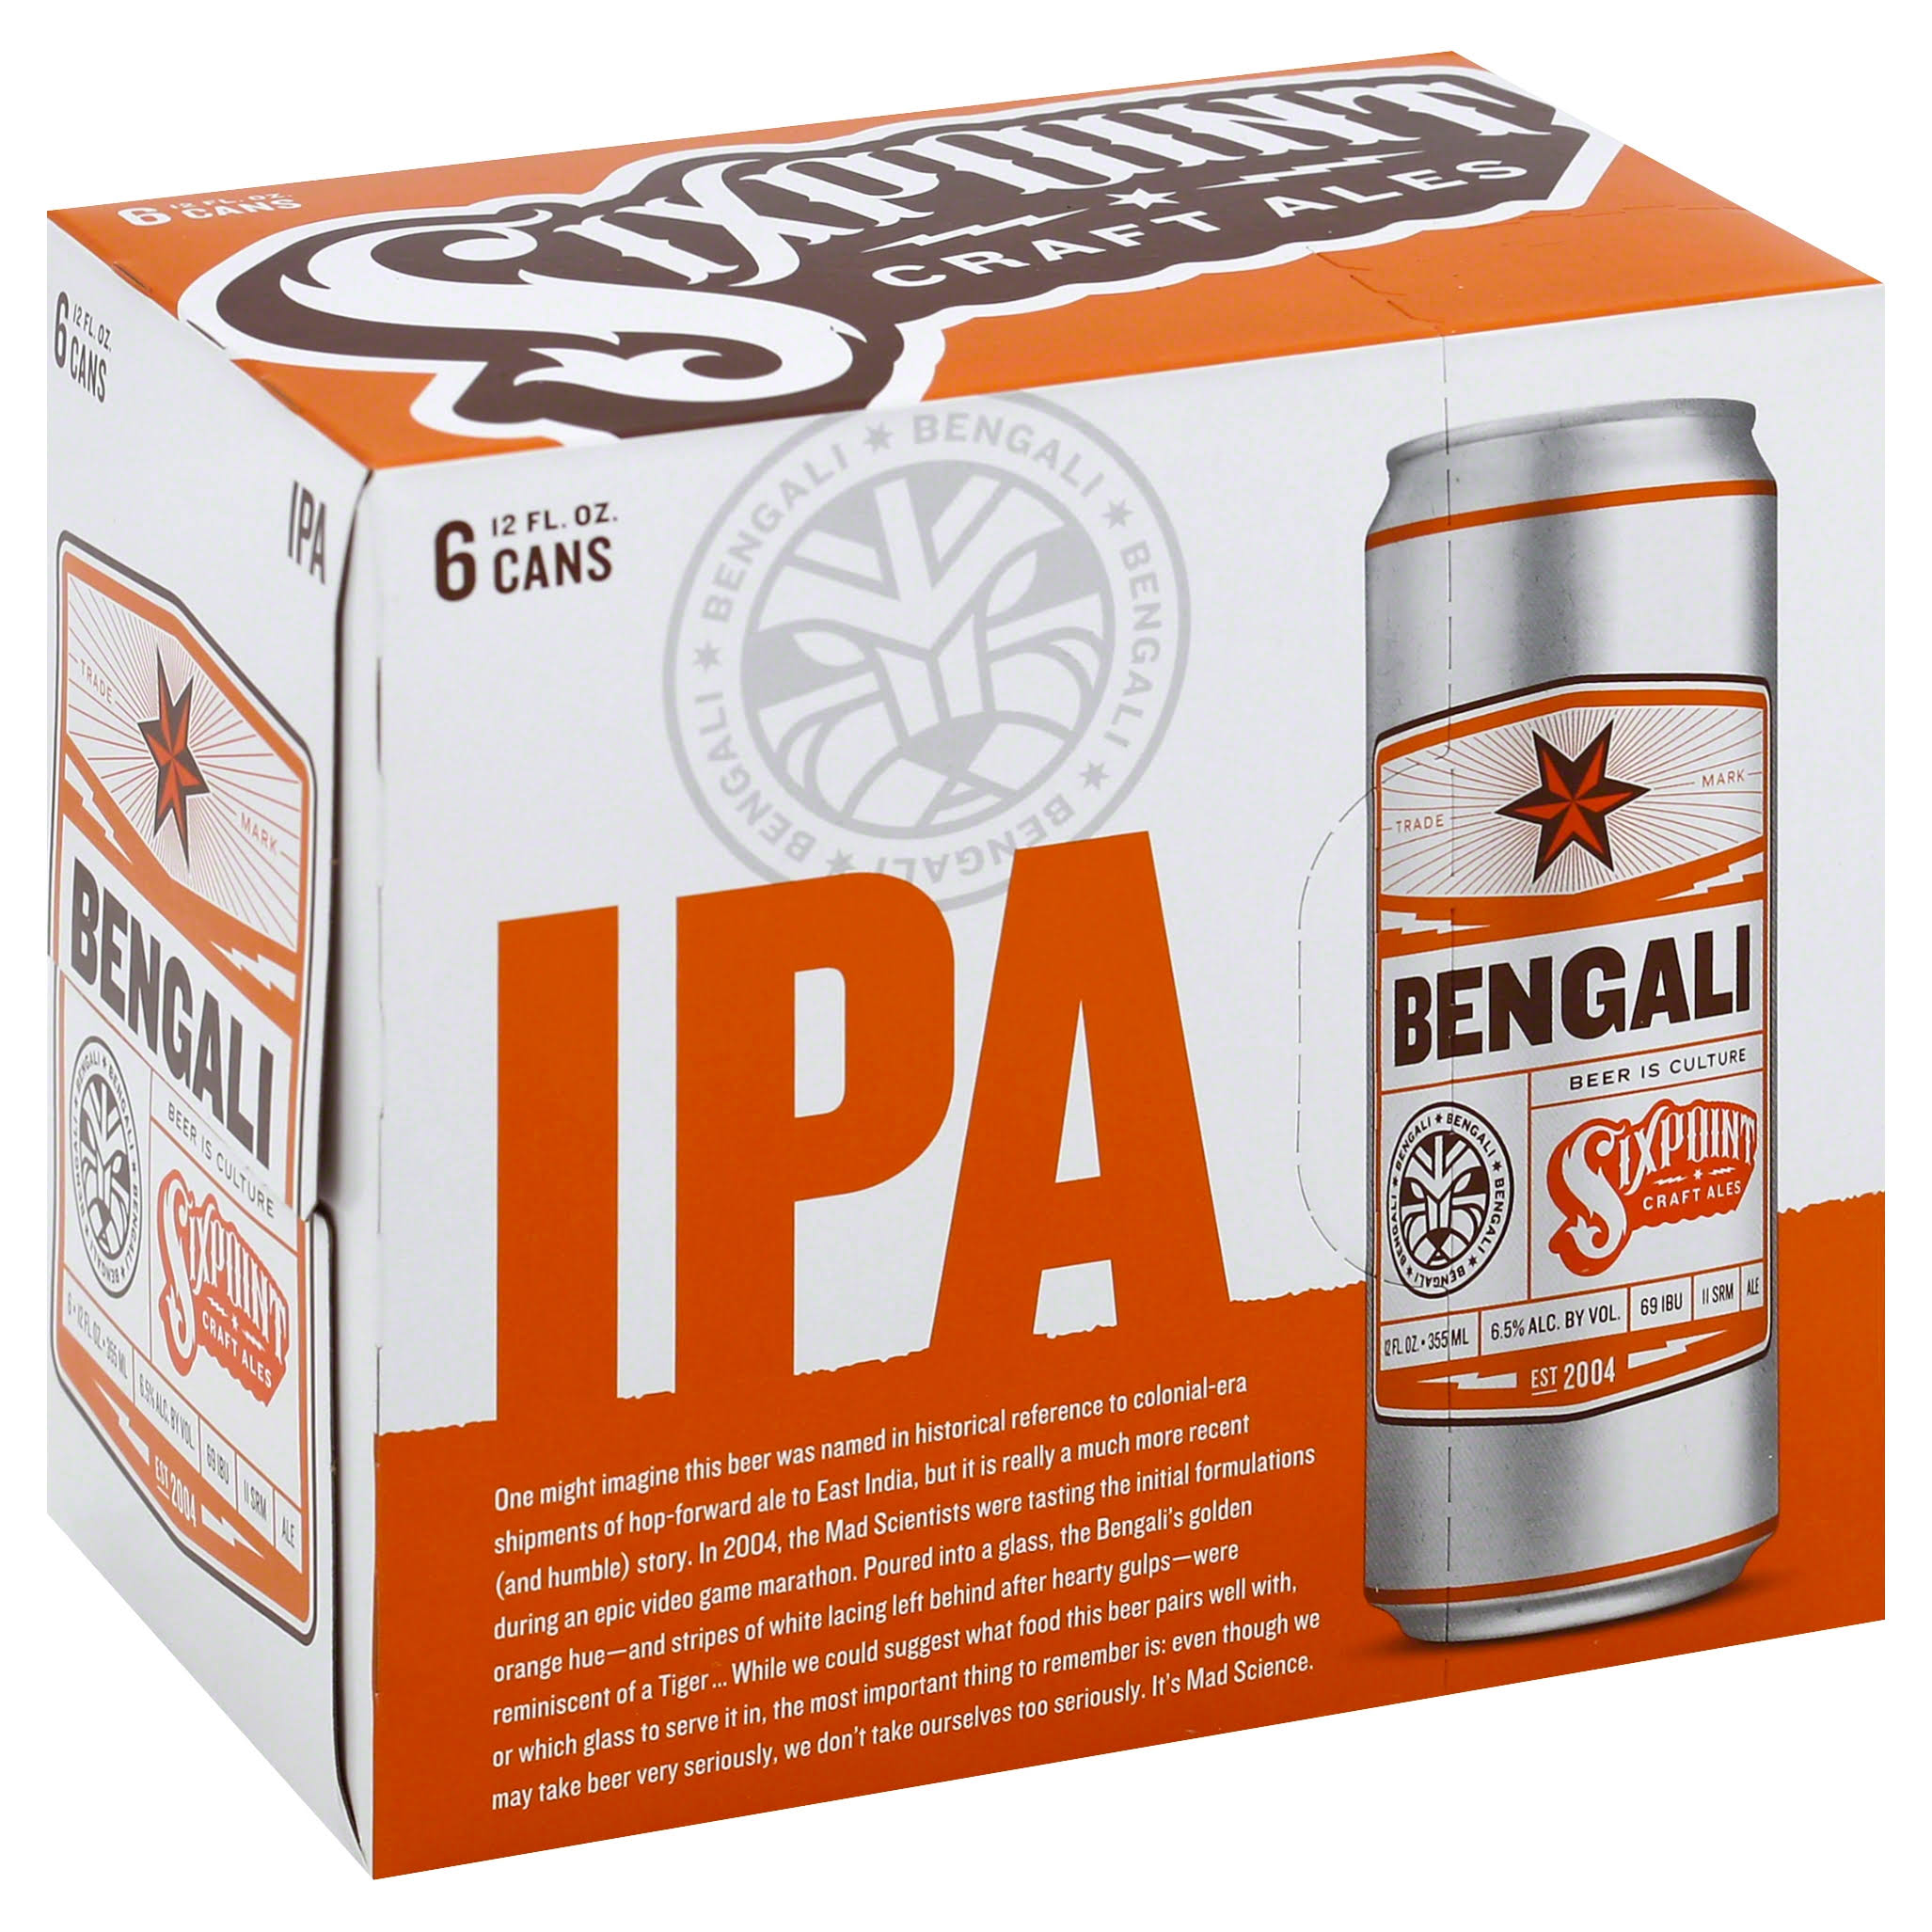 Sixpoint Beer, IPA, Bengali - 6 pack, 12 fl oz cans